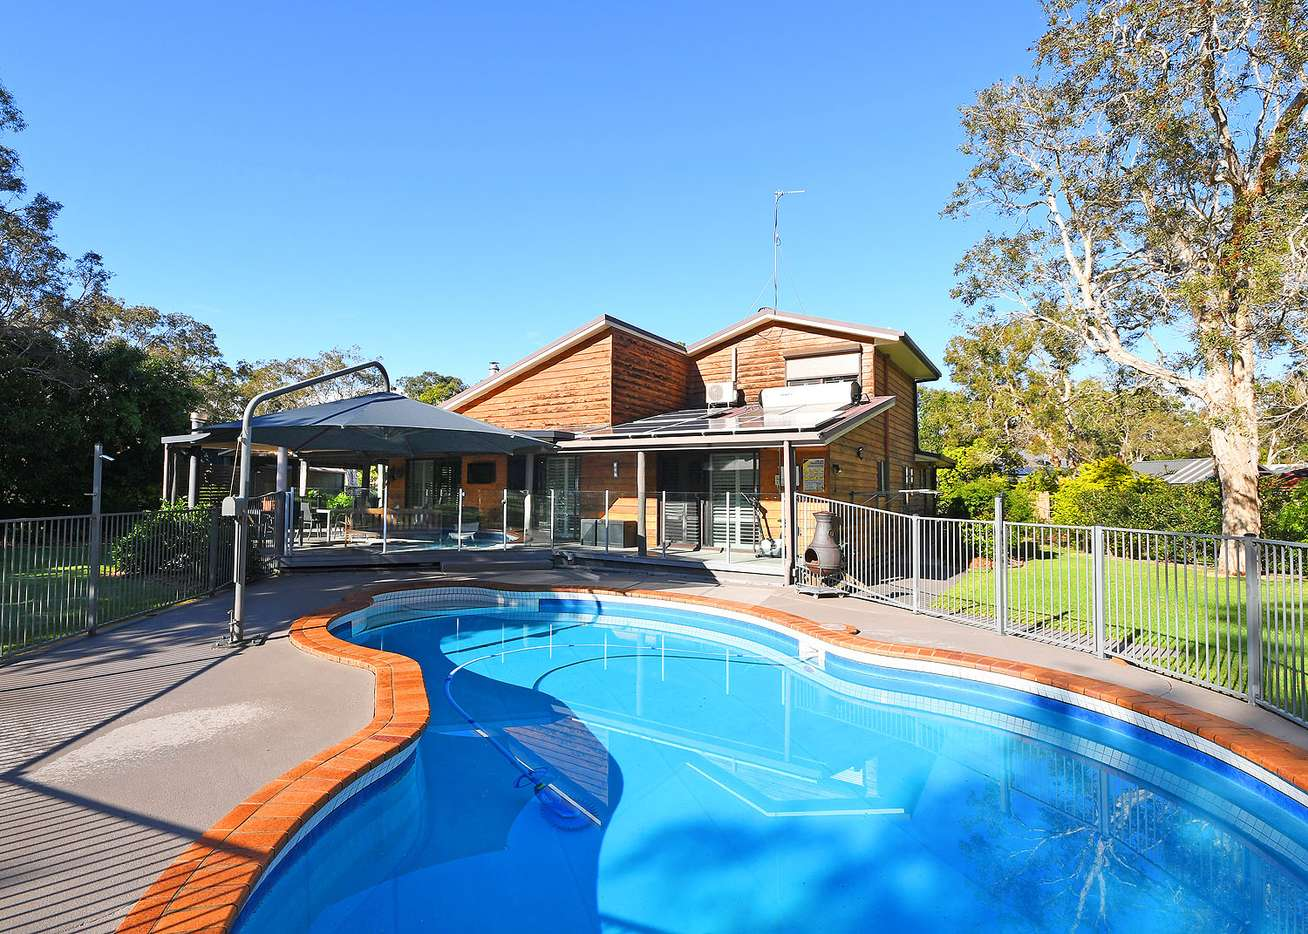 Main view of Homely house listing, 7 Windemere Road, Wondunna, QLD 4655